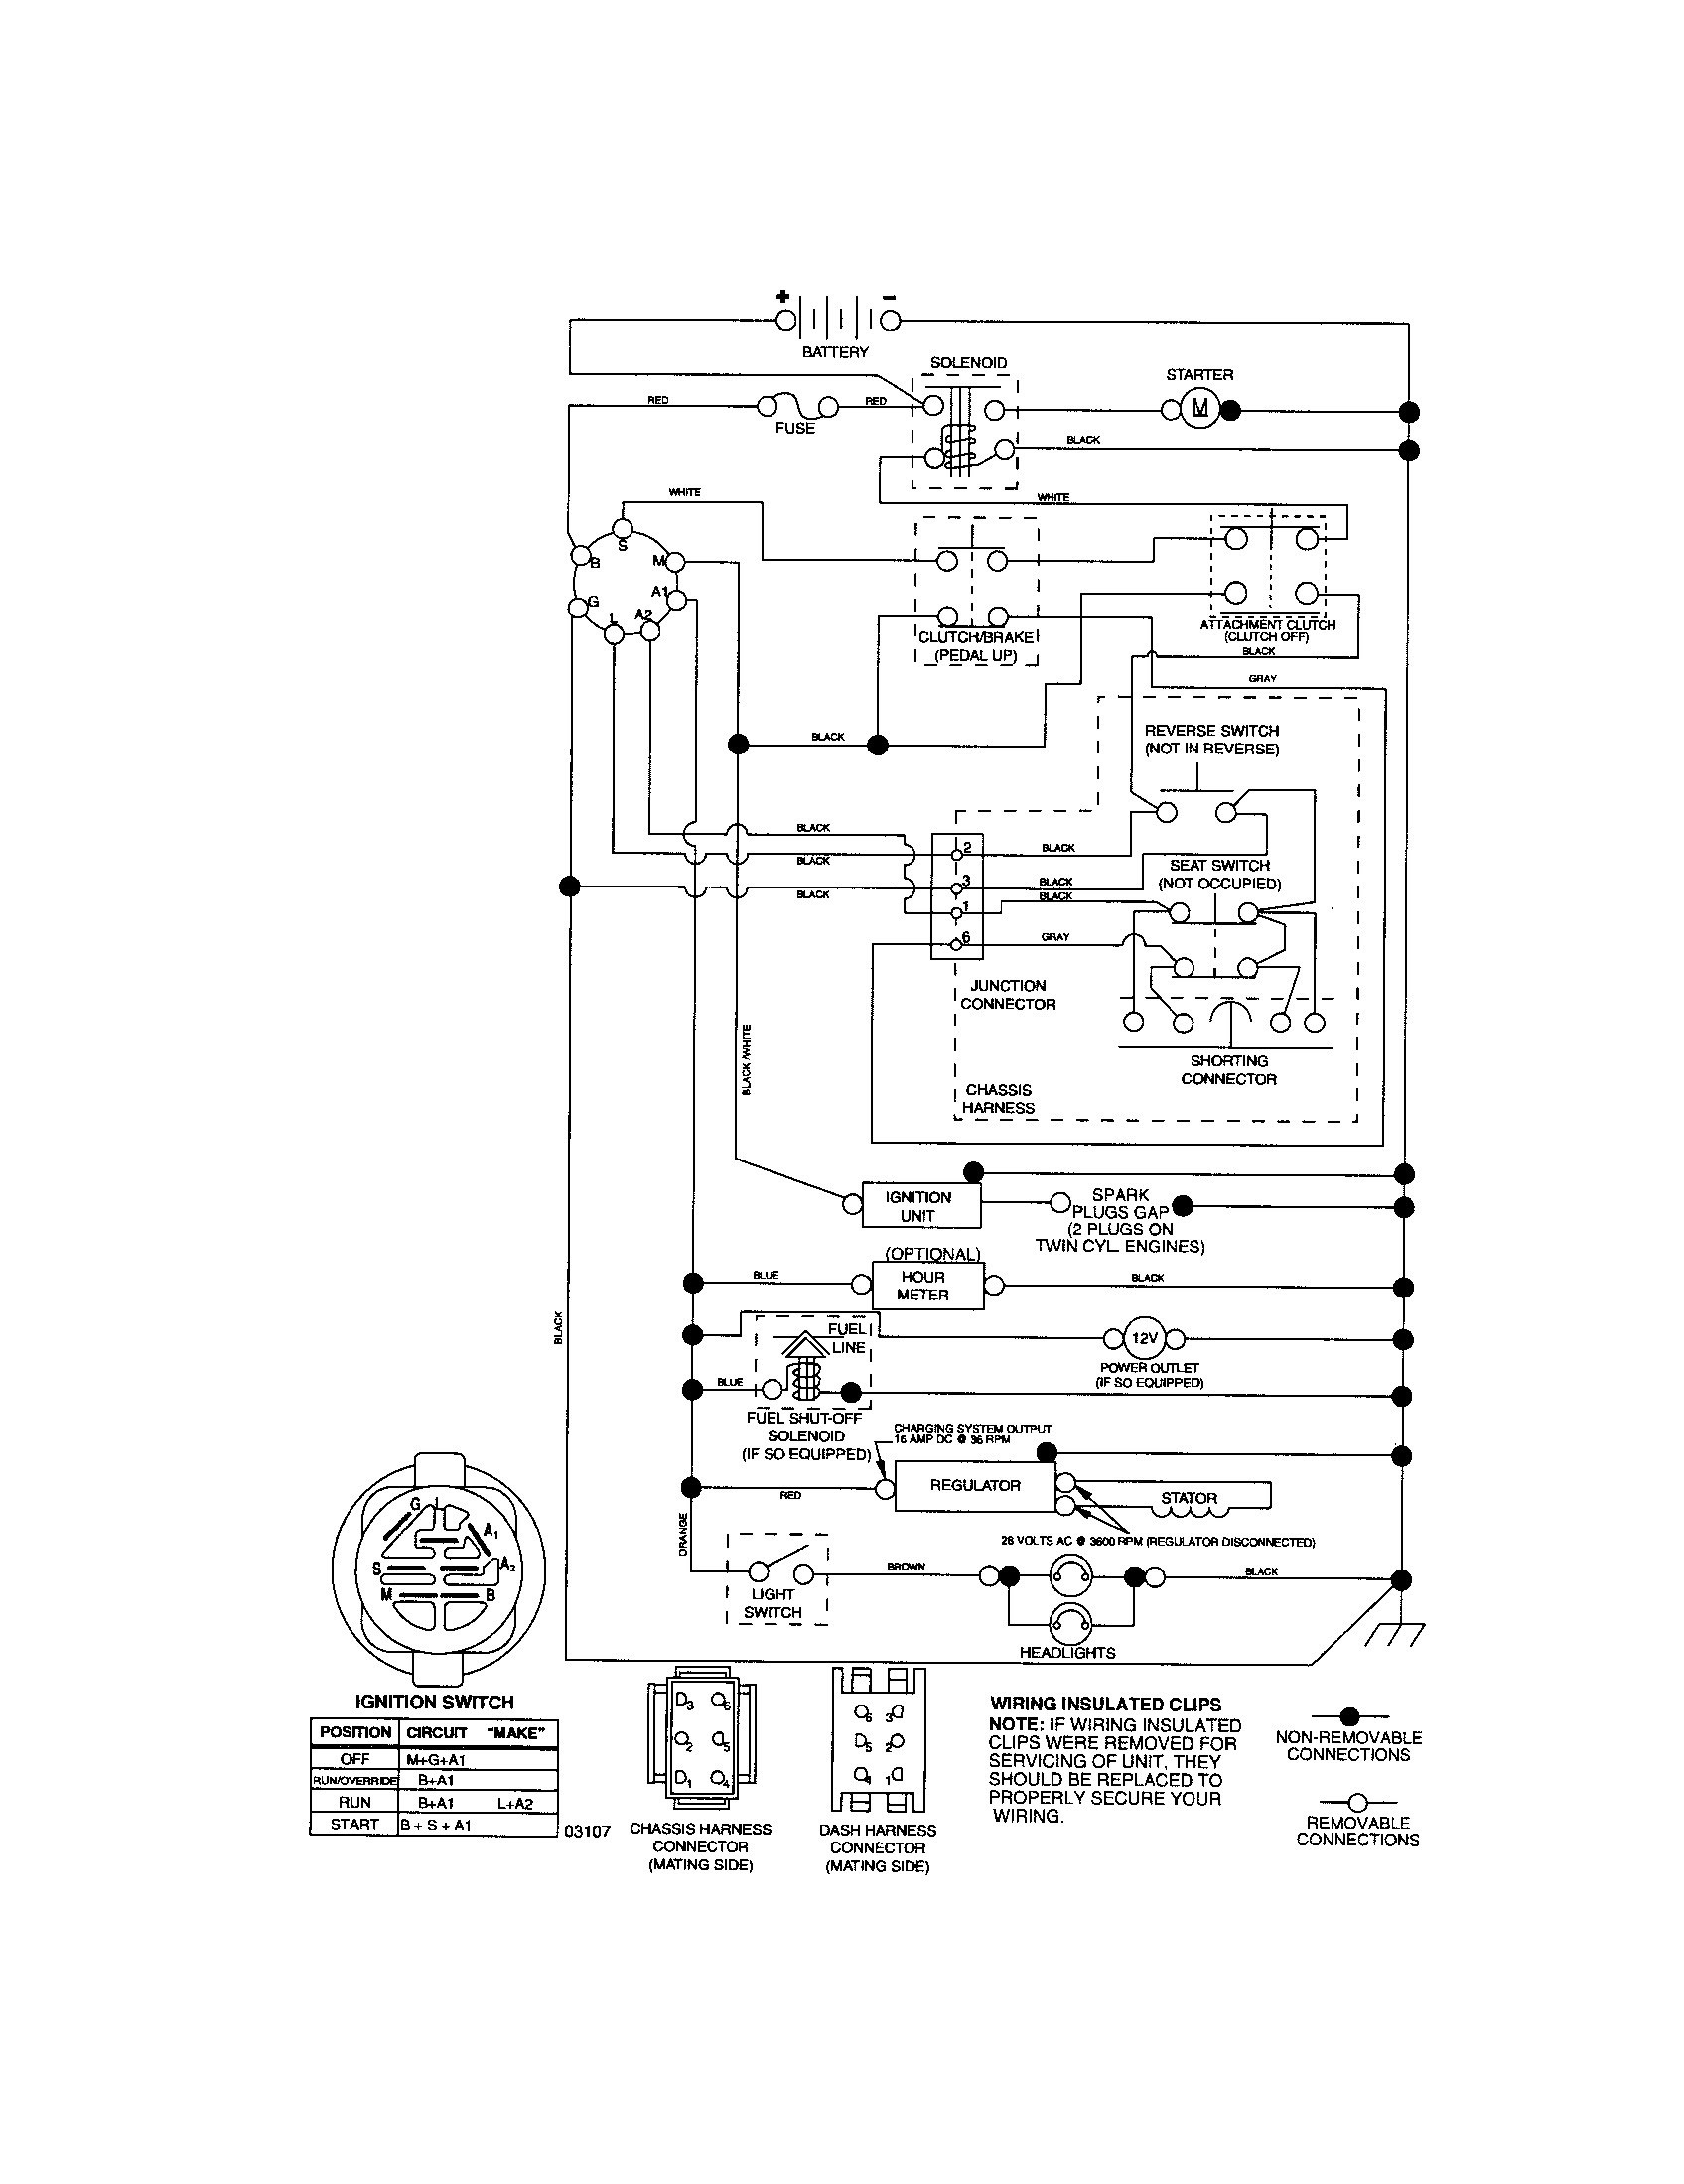 Wiring Manual Pdf  110 Volt Wiring Diagrams